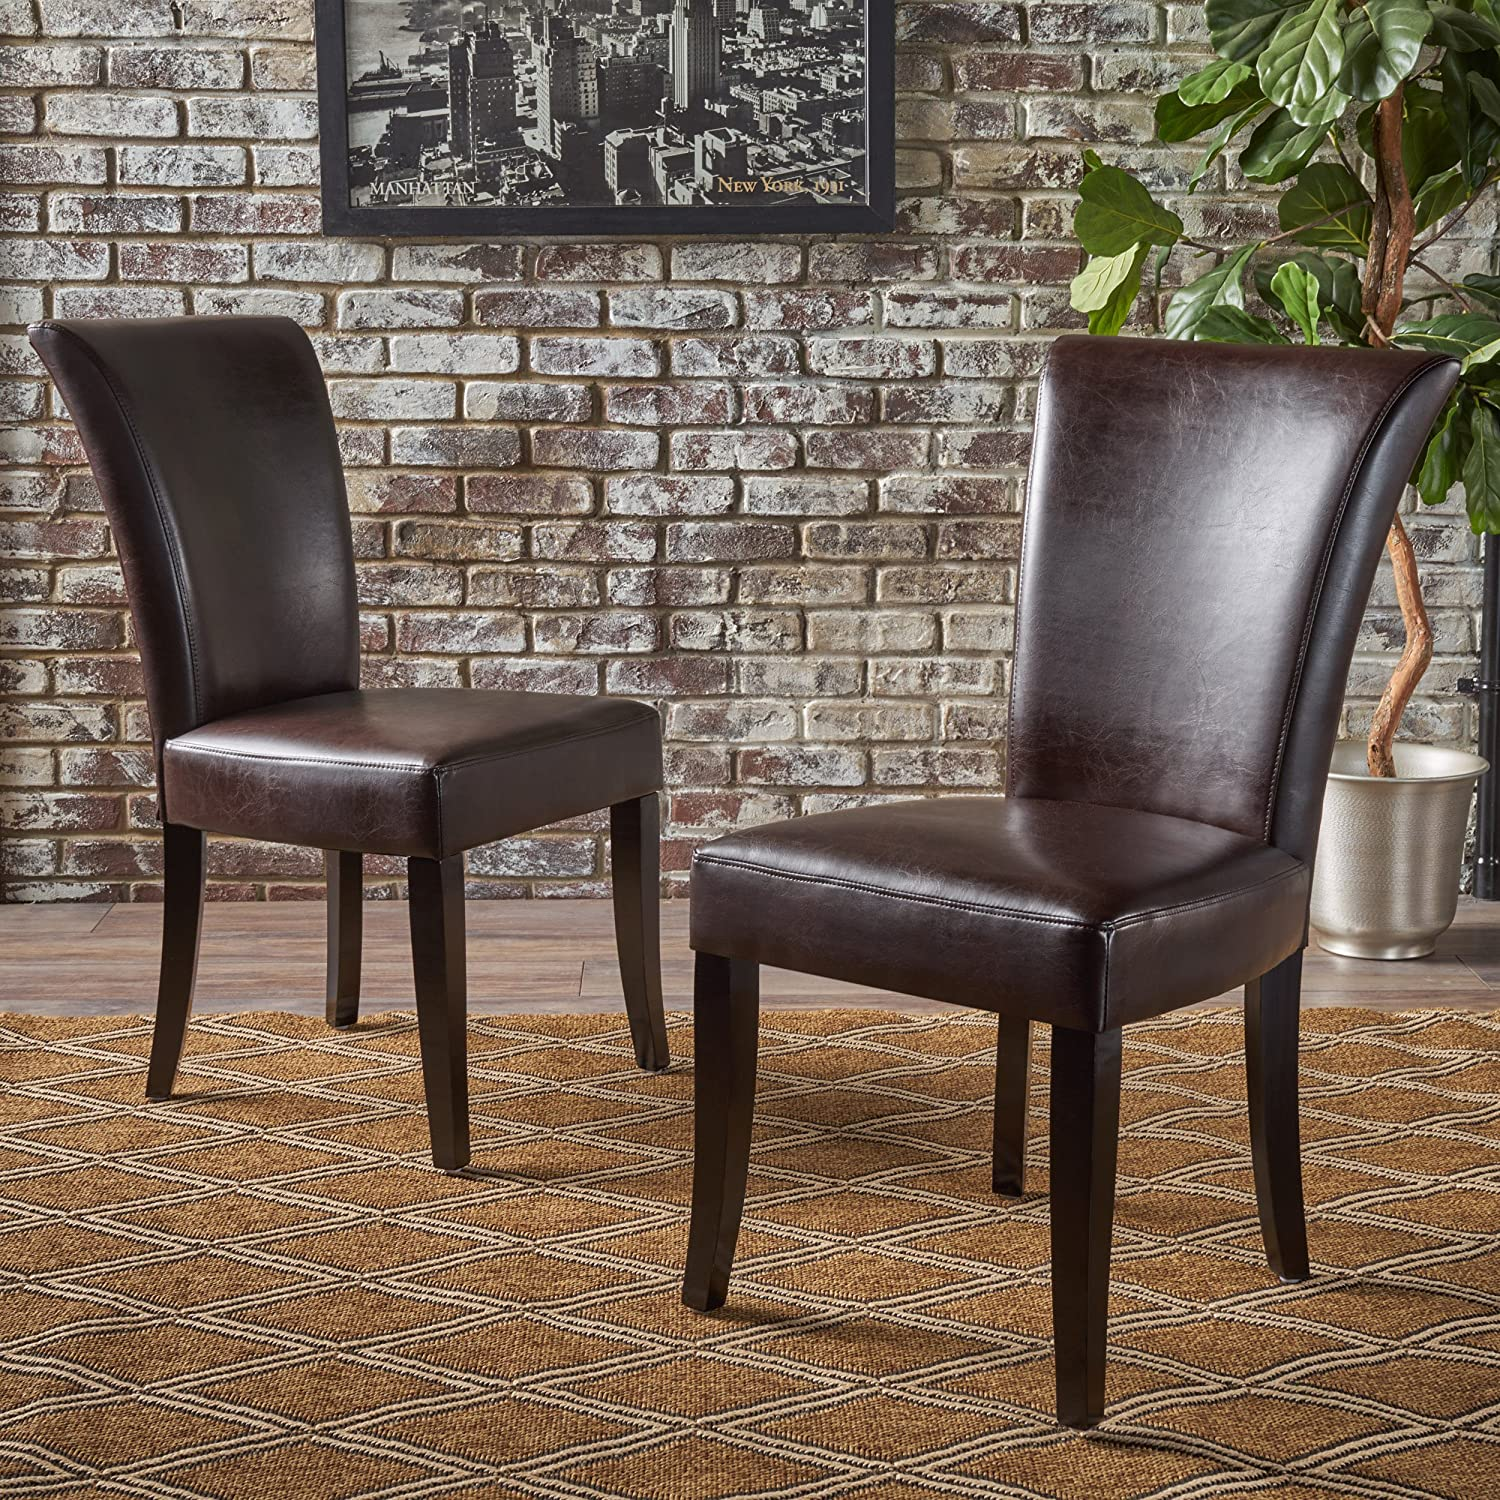 Christopher Knight Home Elmore Brown Leather Dining Chairs (Set of 2)